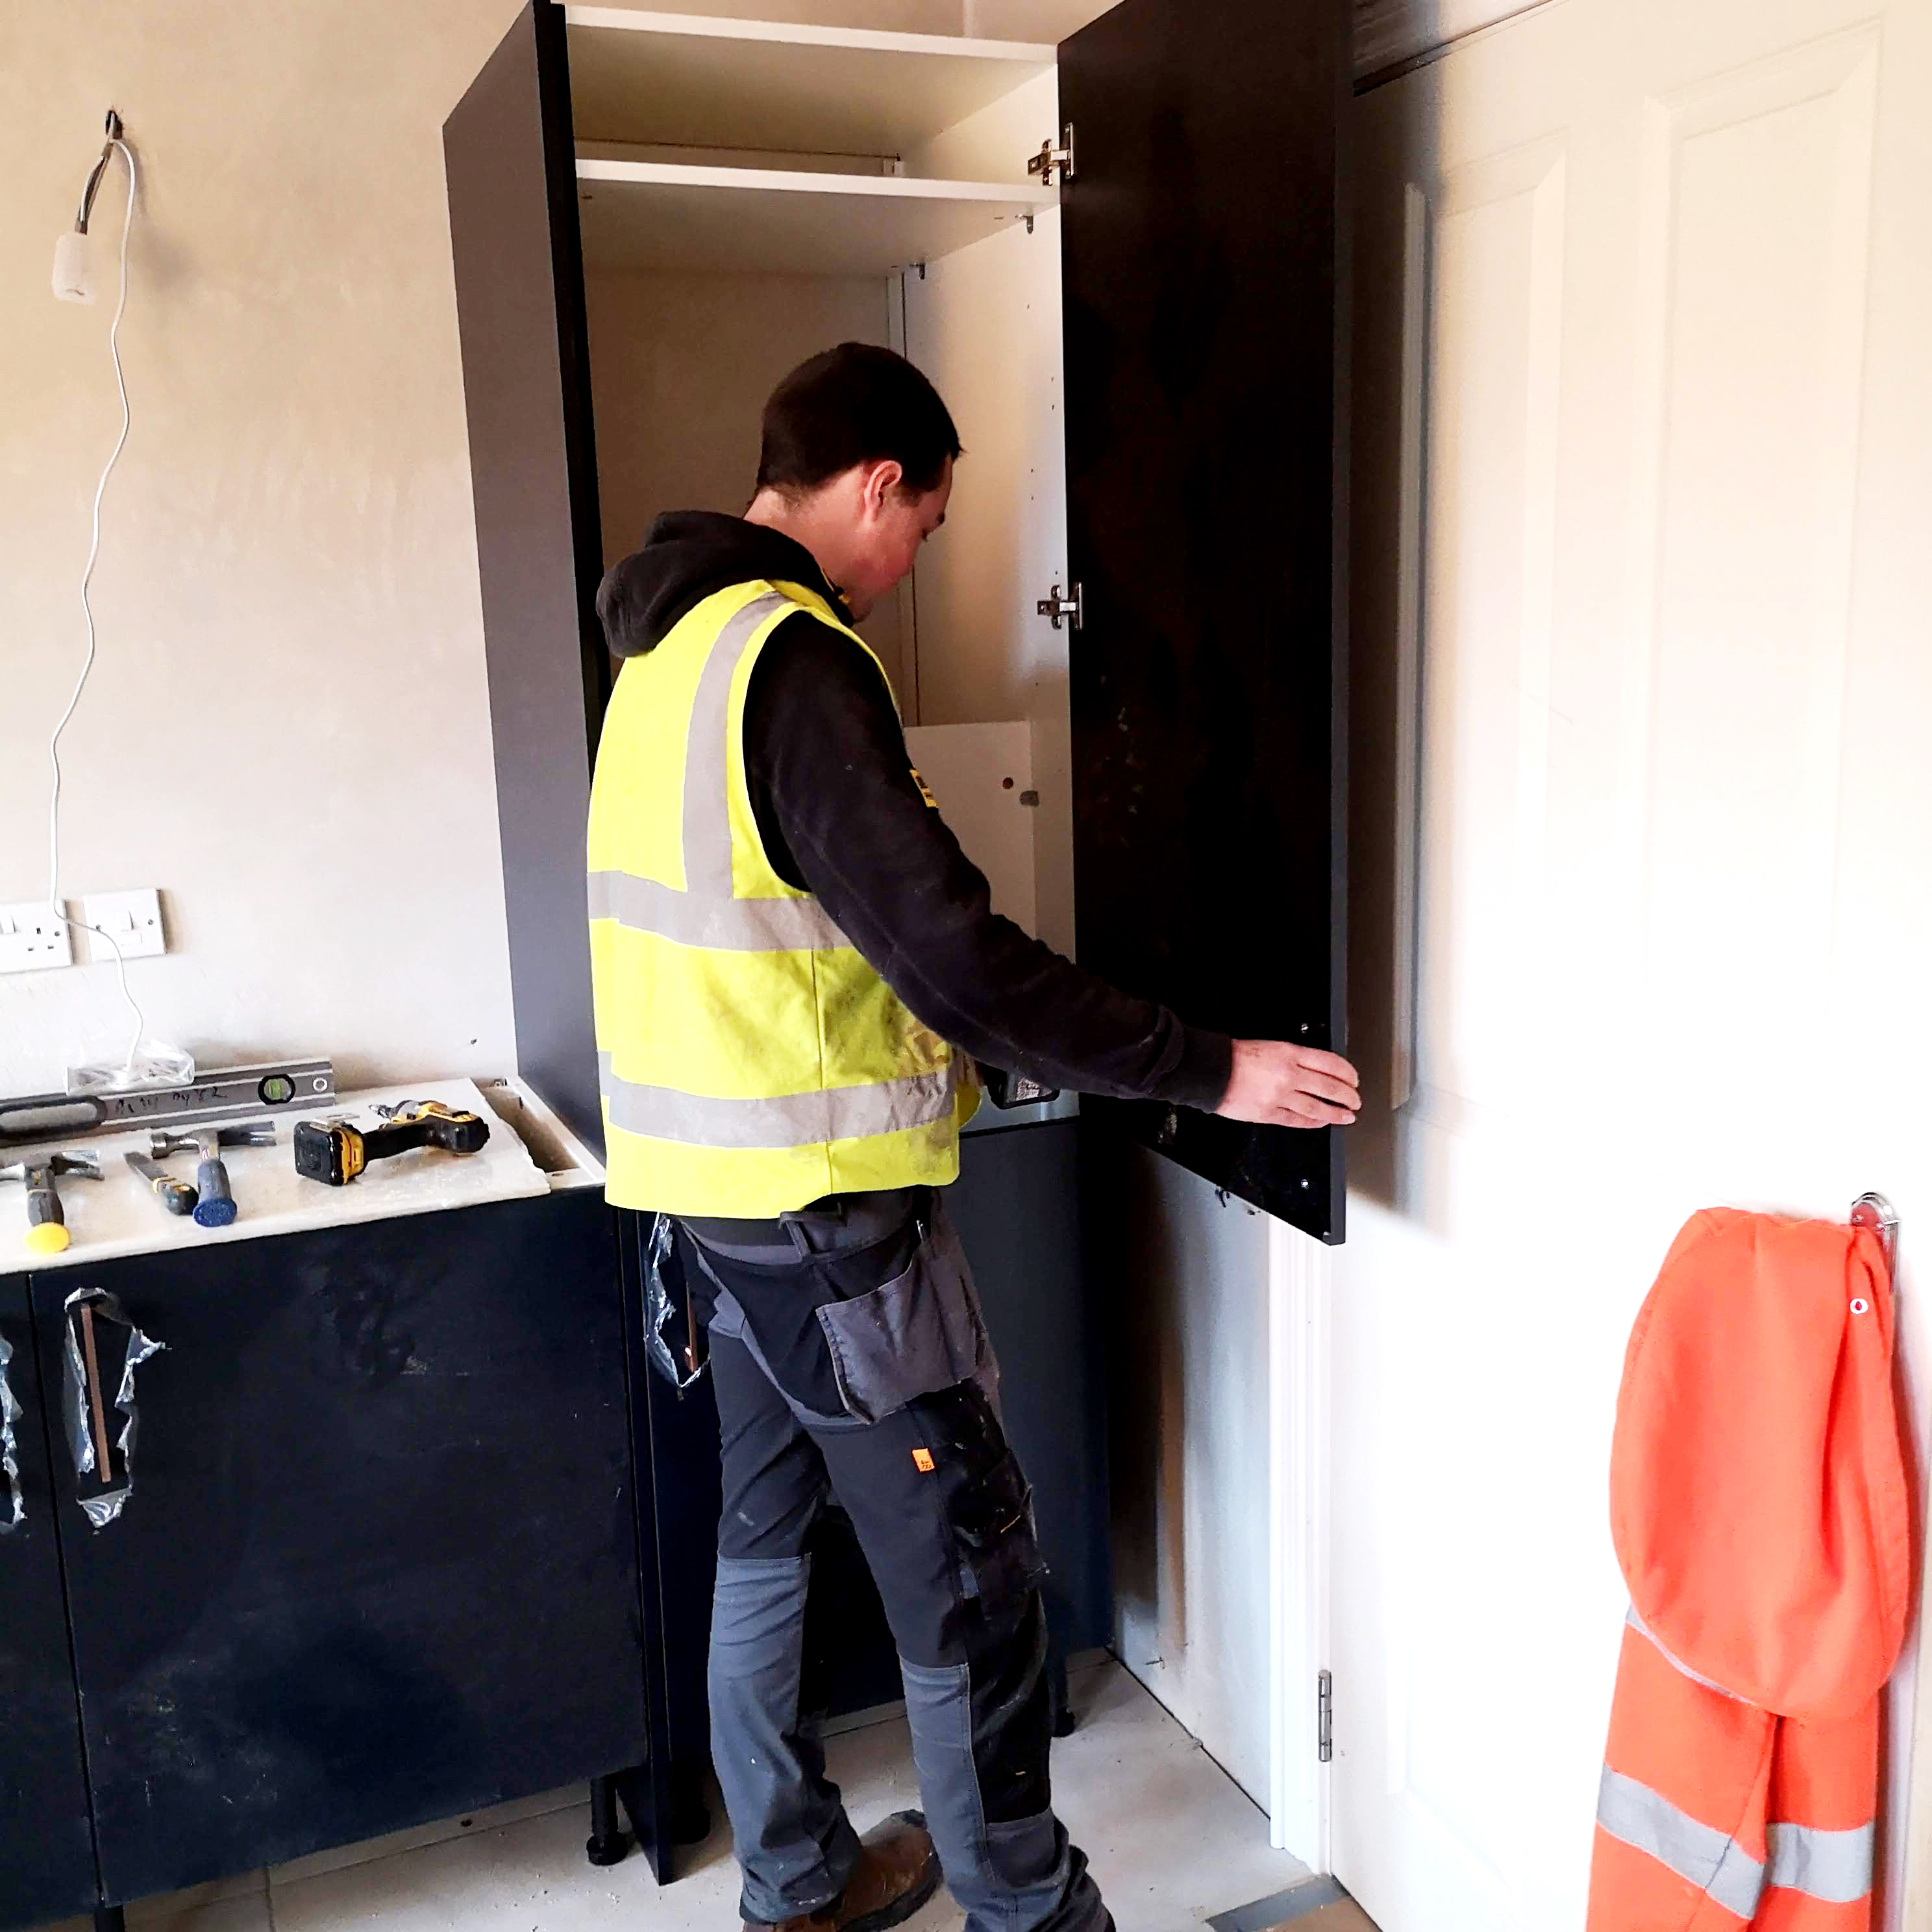 Kitchen-Fitter-–-Jonathan-Meaney-School-–-Tec.-Andrew-Piper-Carpentry-and-Joinery.jpg?mtime=20200206151128#asset:7323